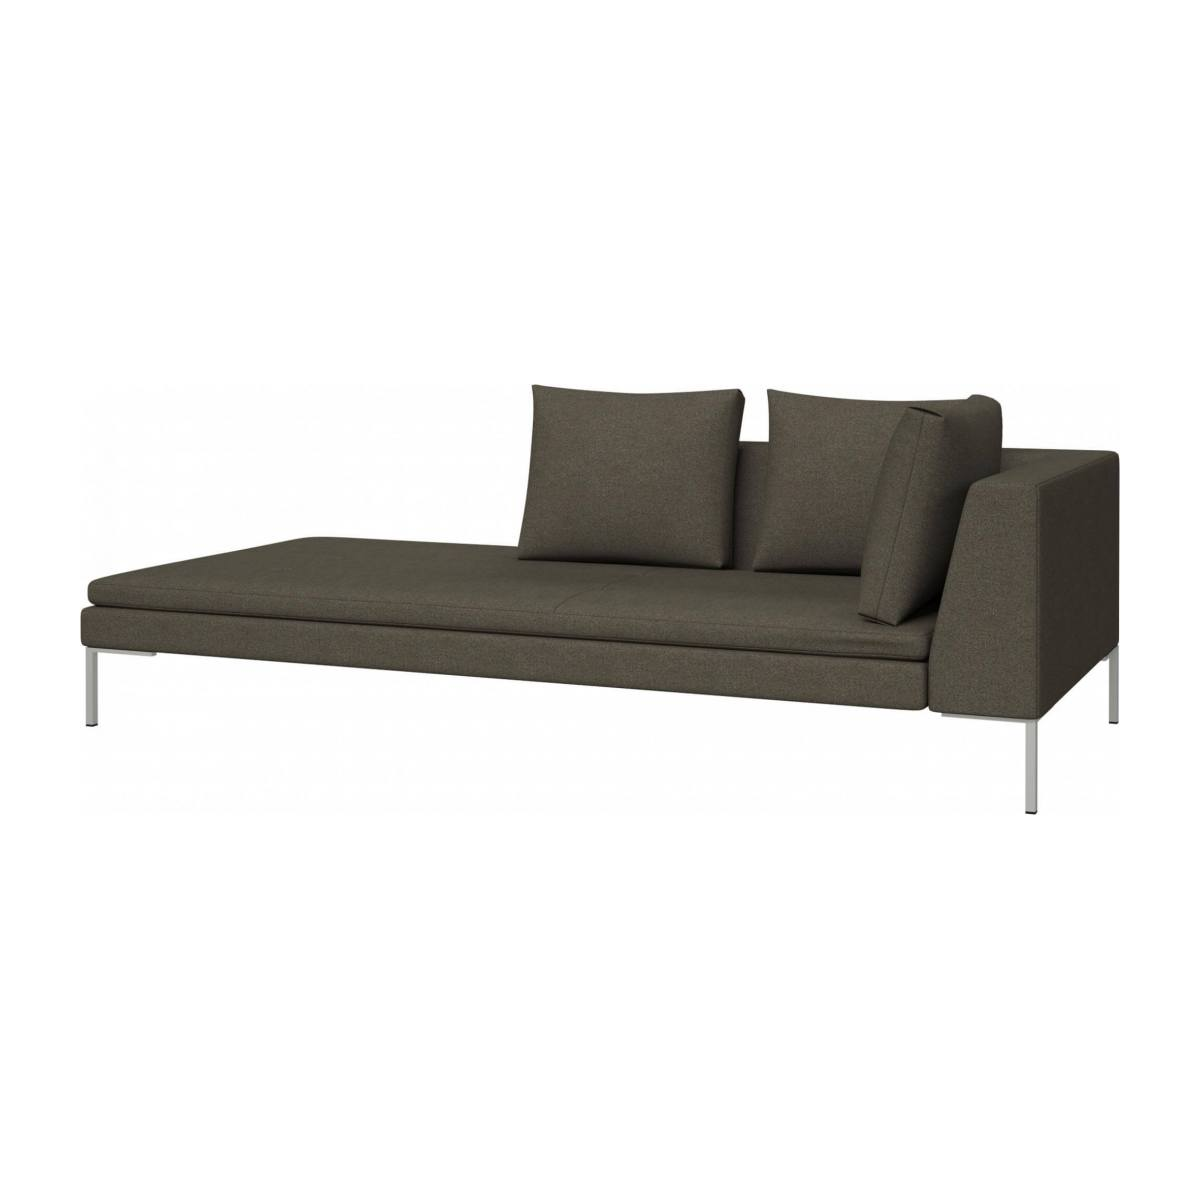 Left chaise longue in Lecce fabric, slade grey n°2